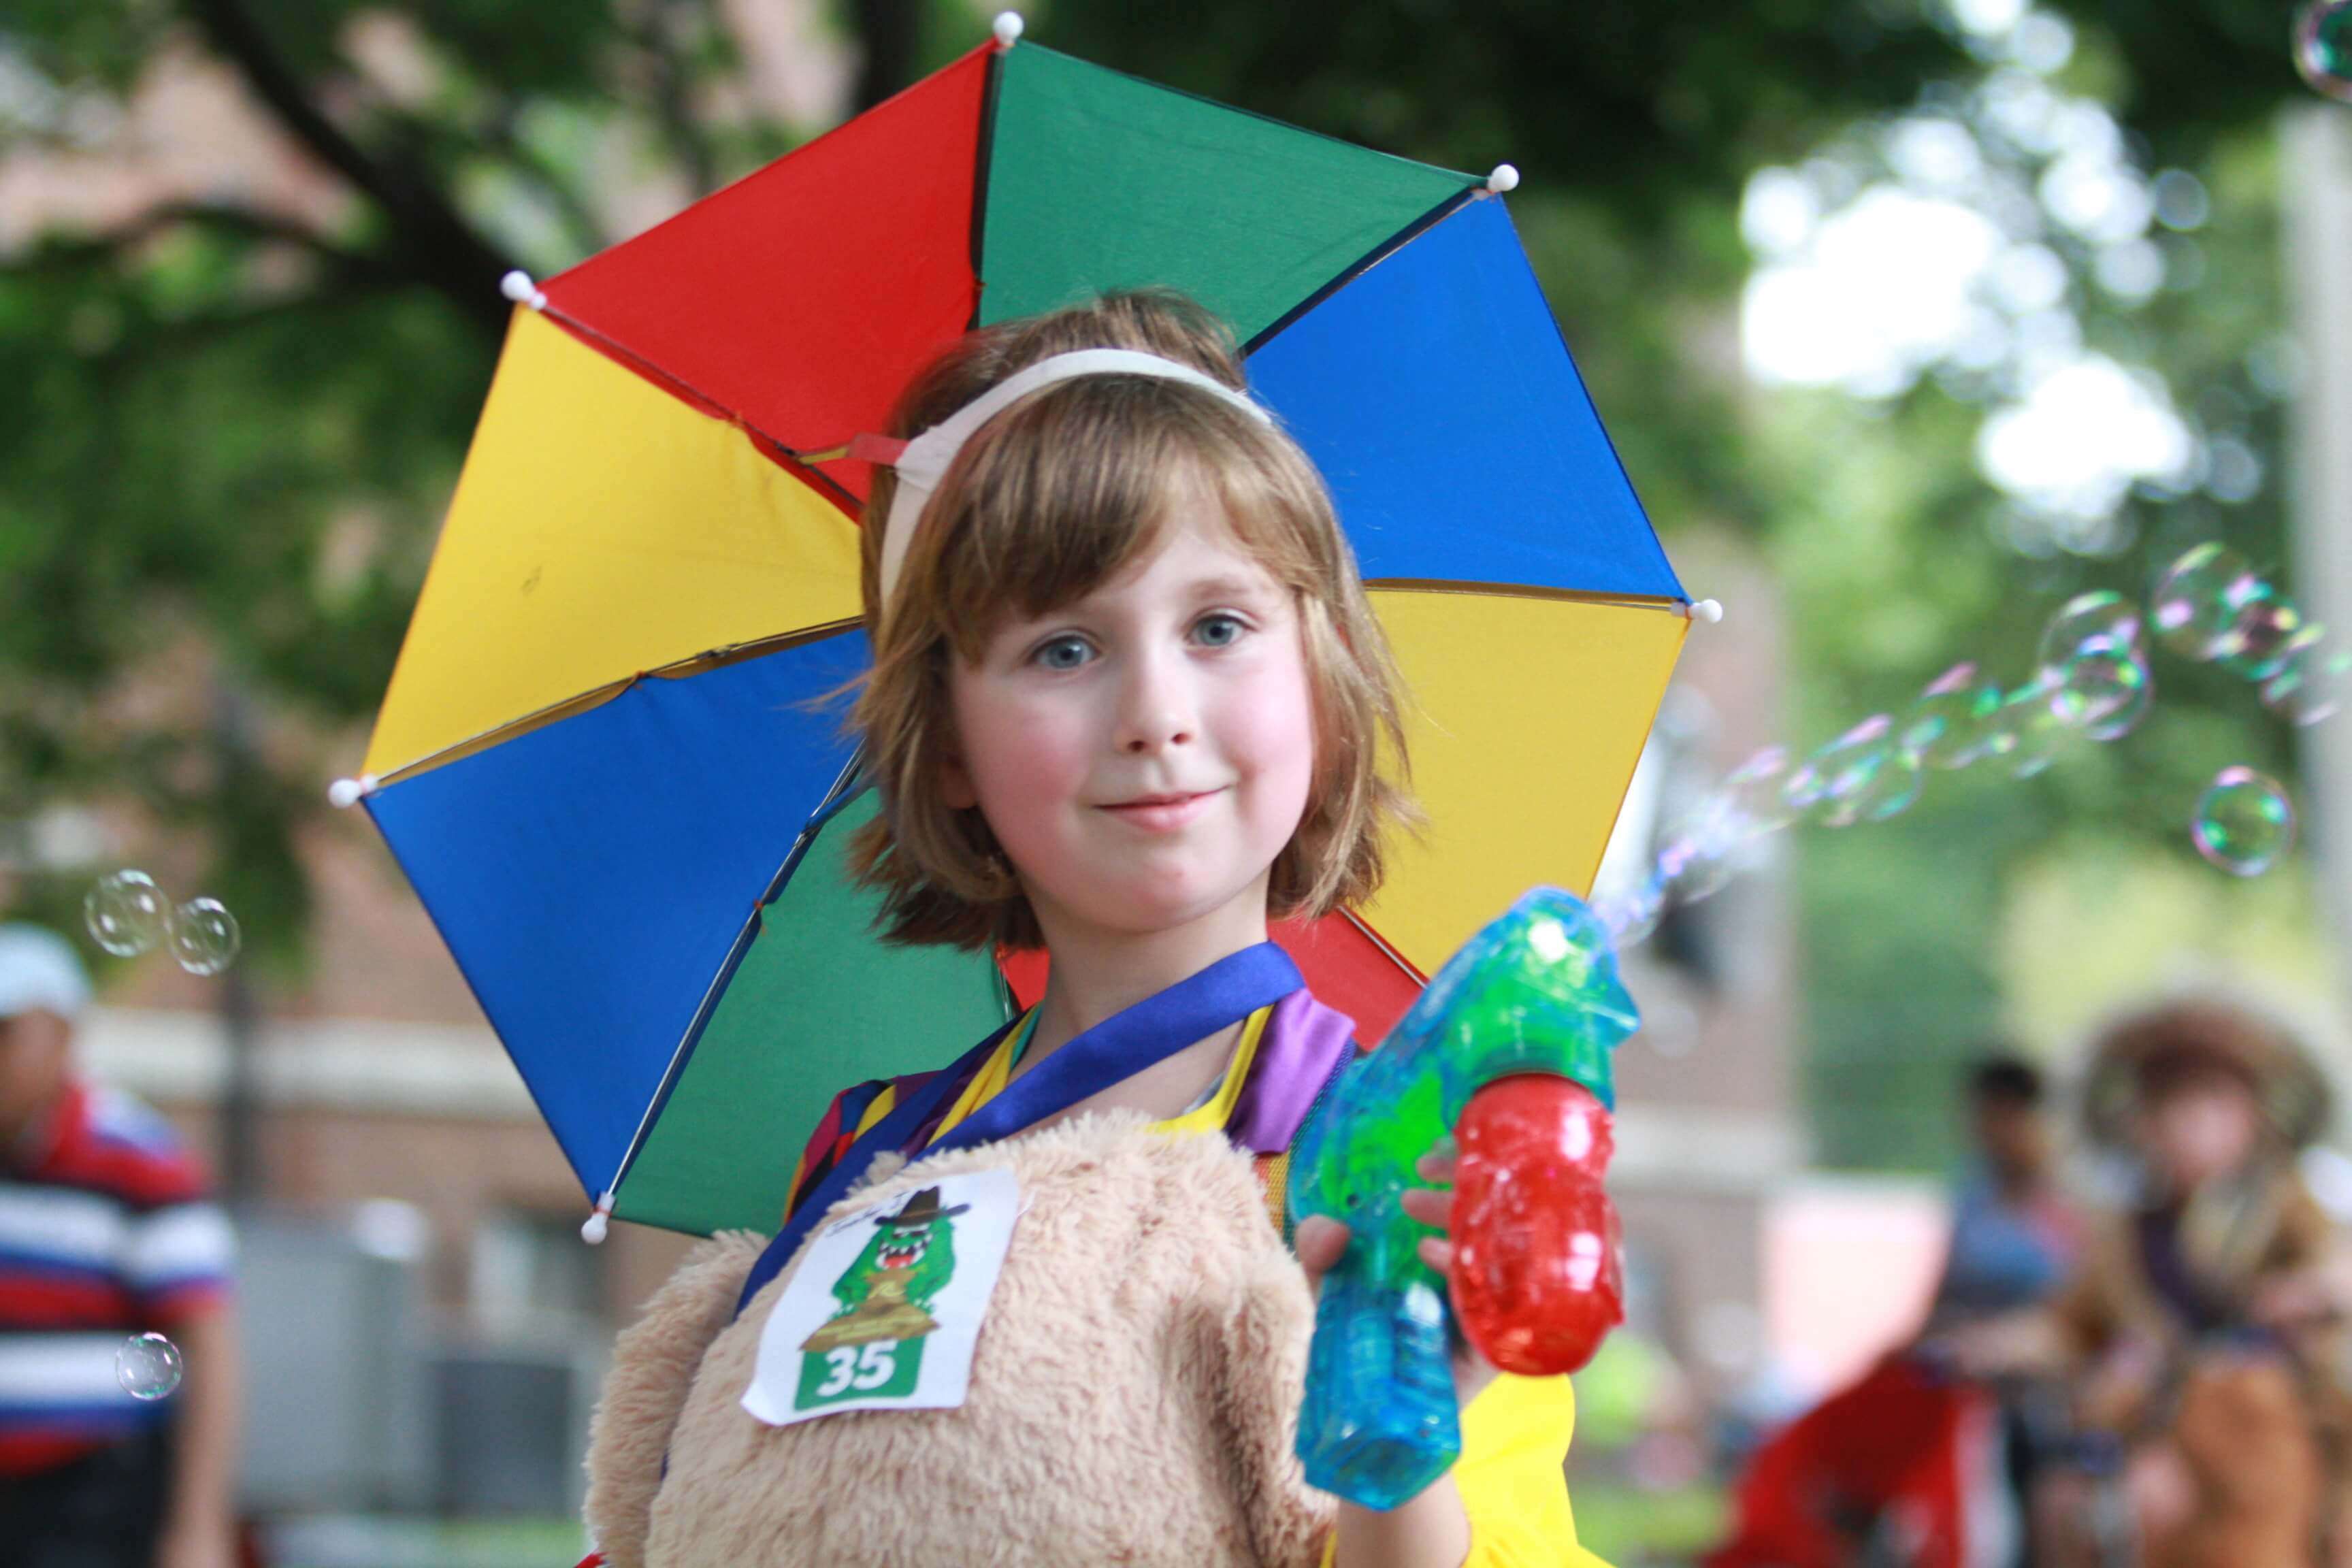 A little girl wearing a rainbow umbrella hat shoots bubbles out of a bubble gun while walking in the Kiddie Parade.